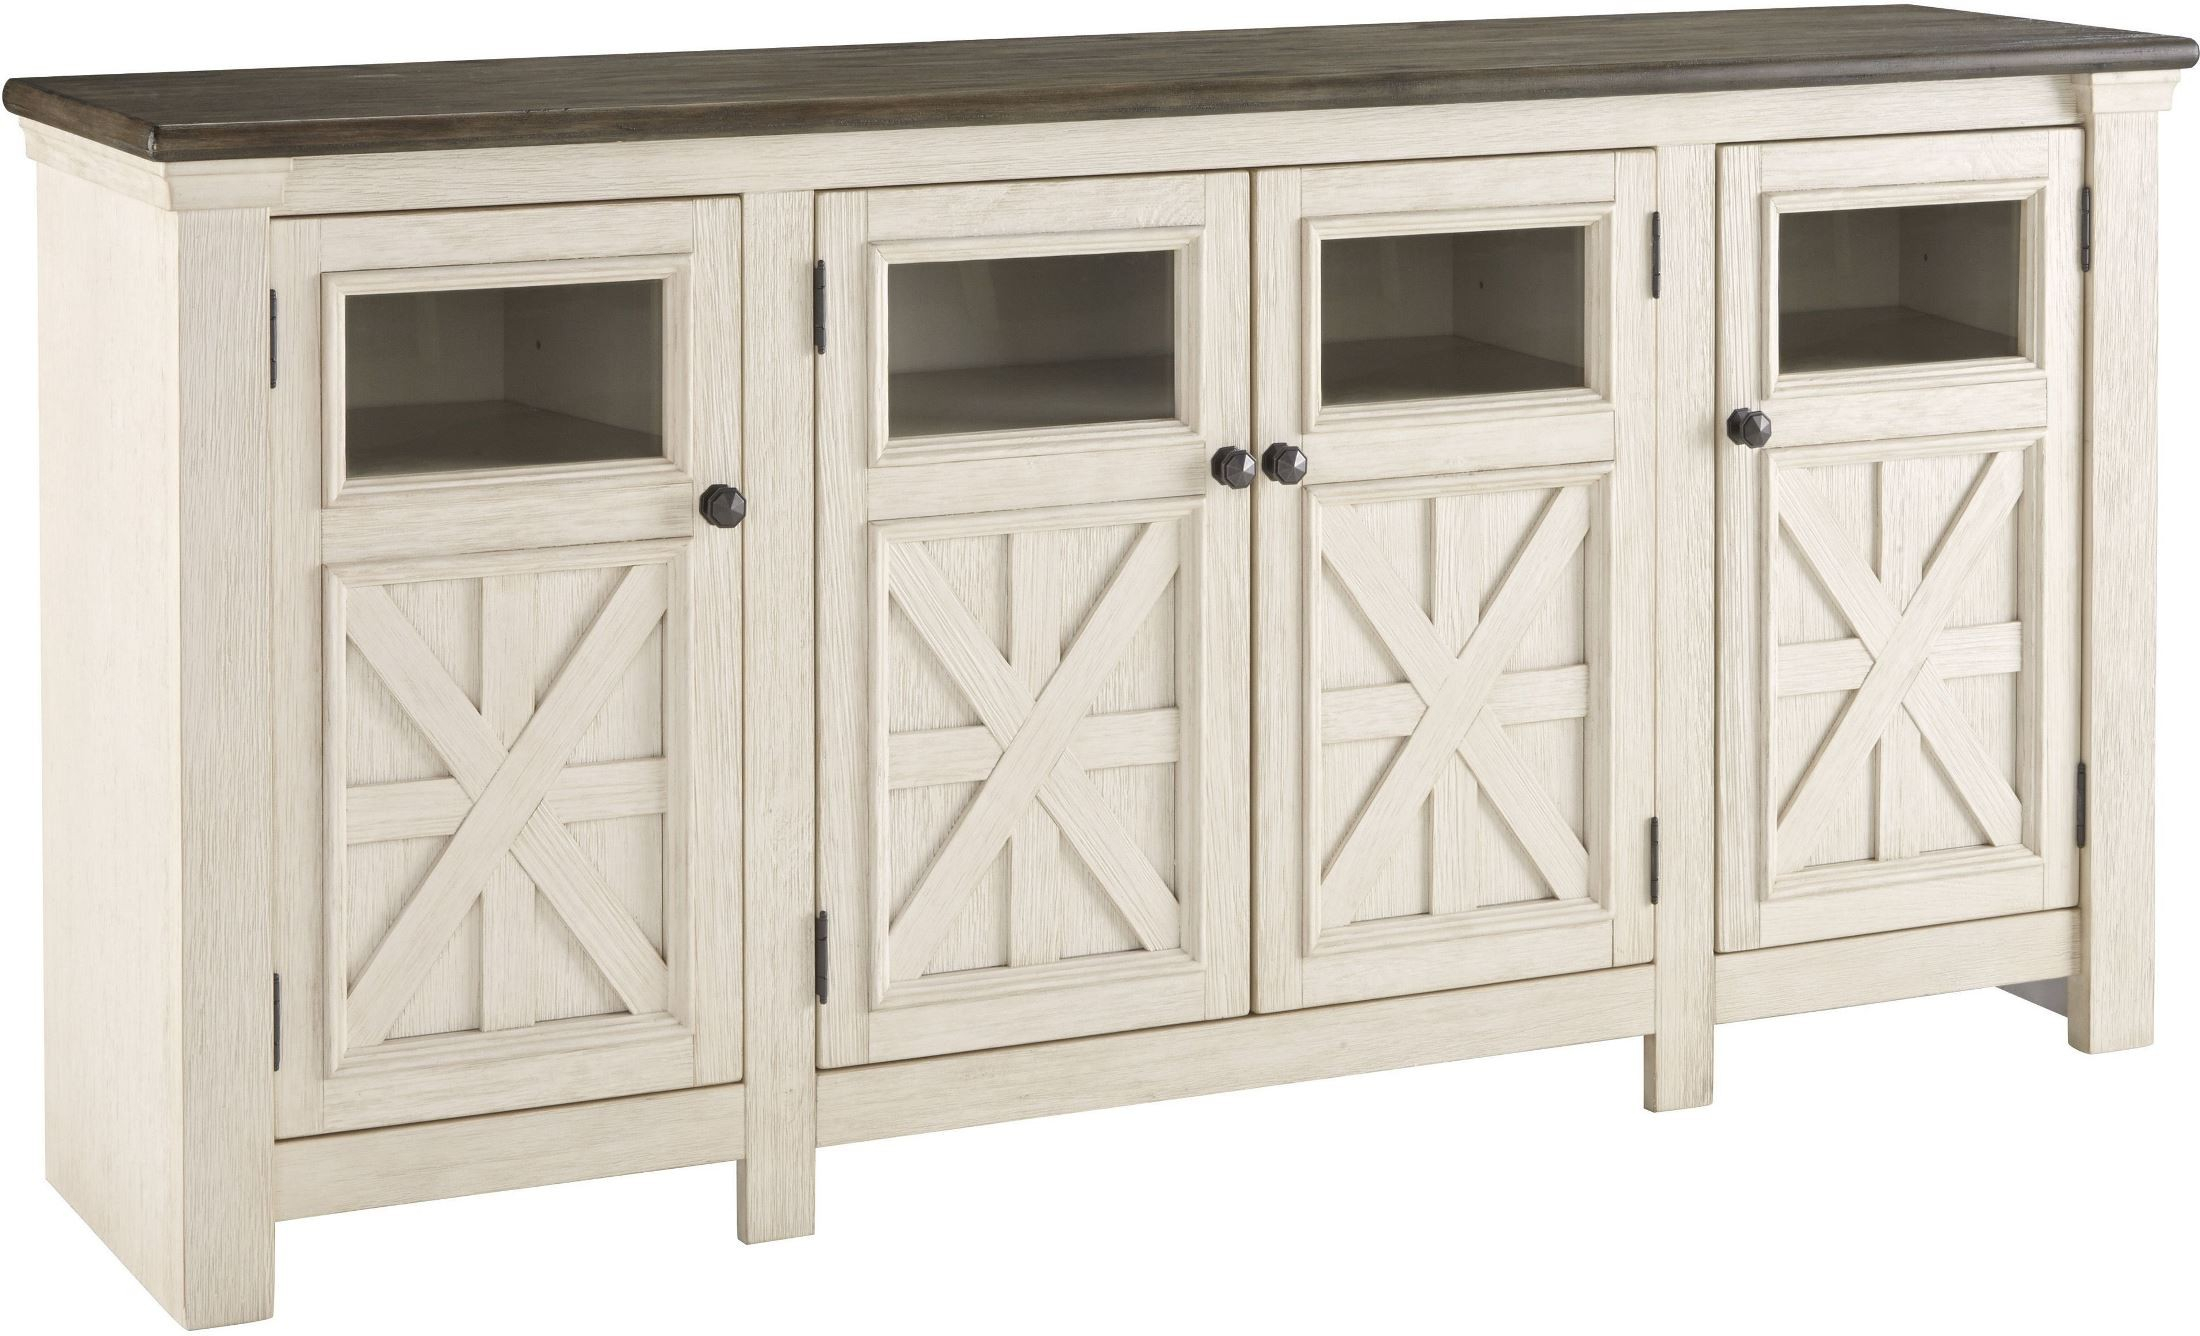 Bolanburg Weathered Gray Extra Large Tv Stand From Ashley | Coleman Within Vista 60 Inch Tv Stands (View 14 of 30)